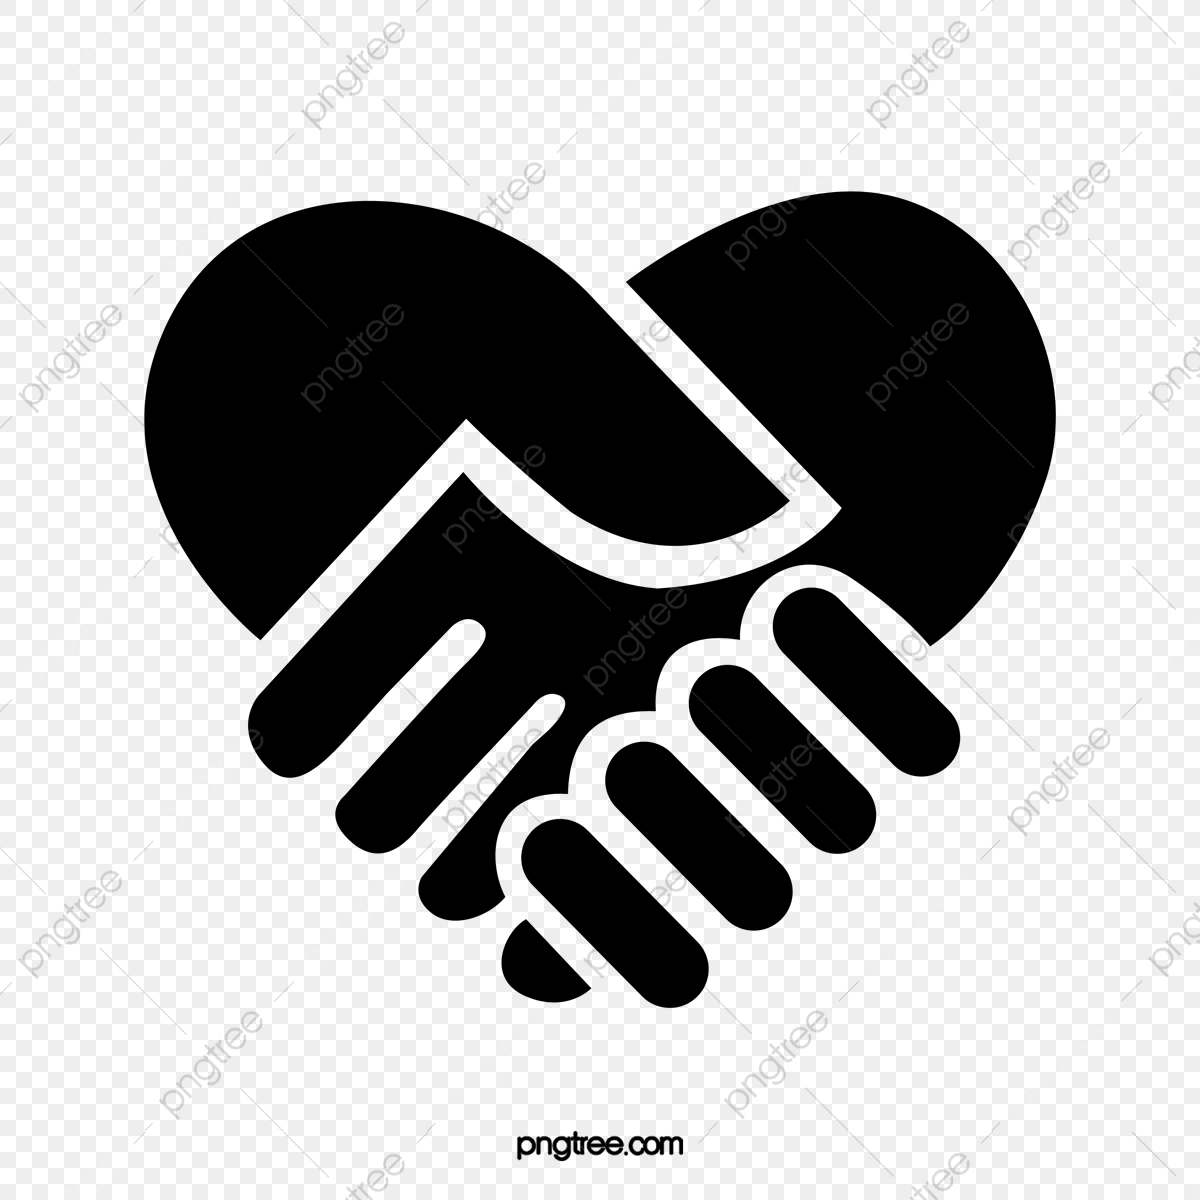 Love black png . Handshake clipart file